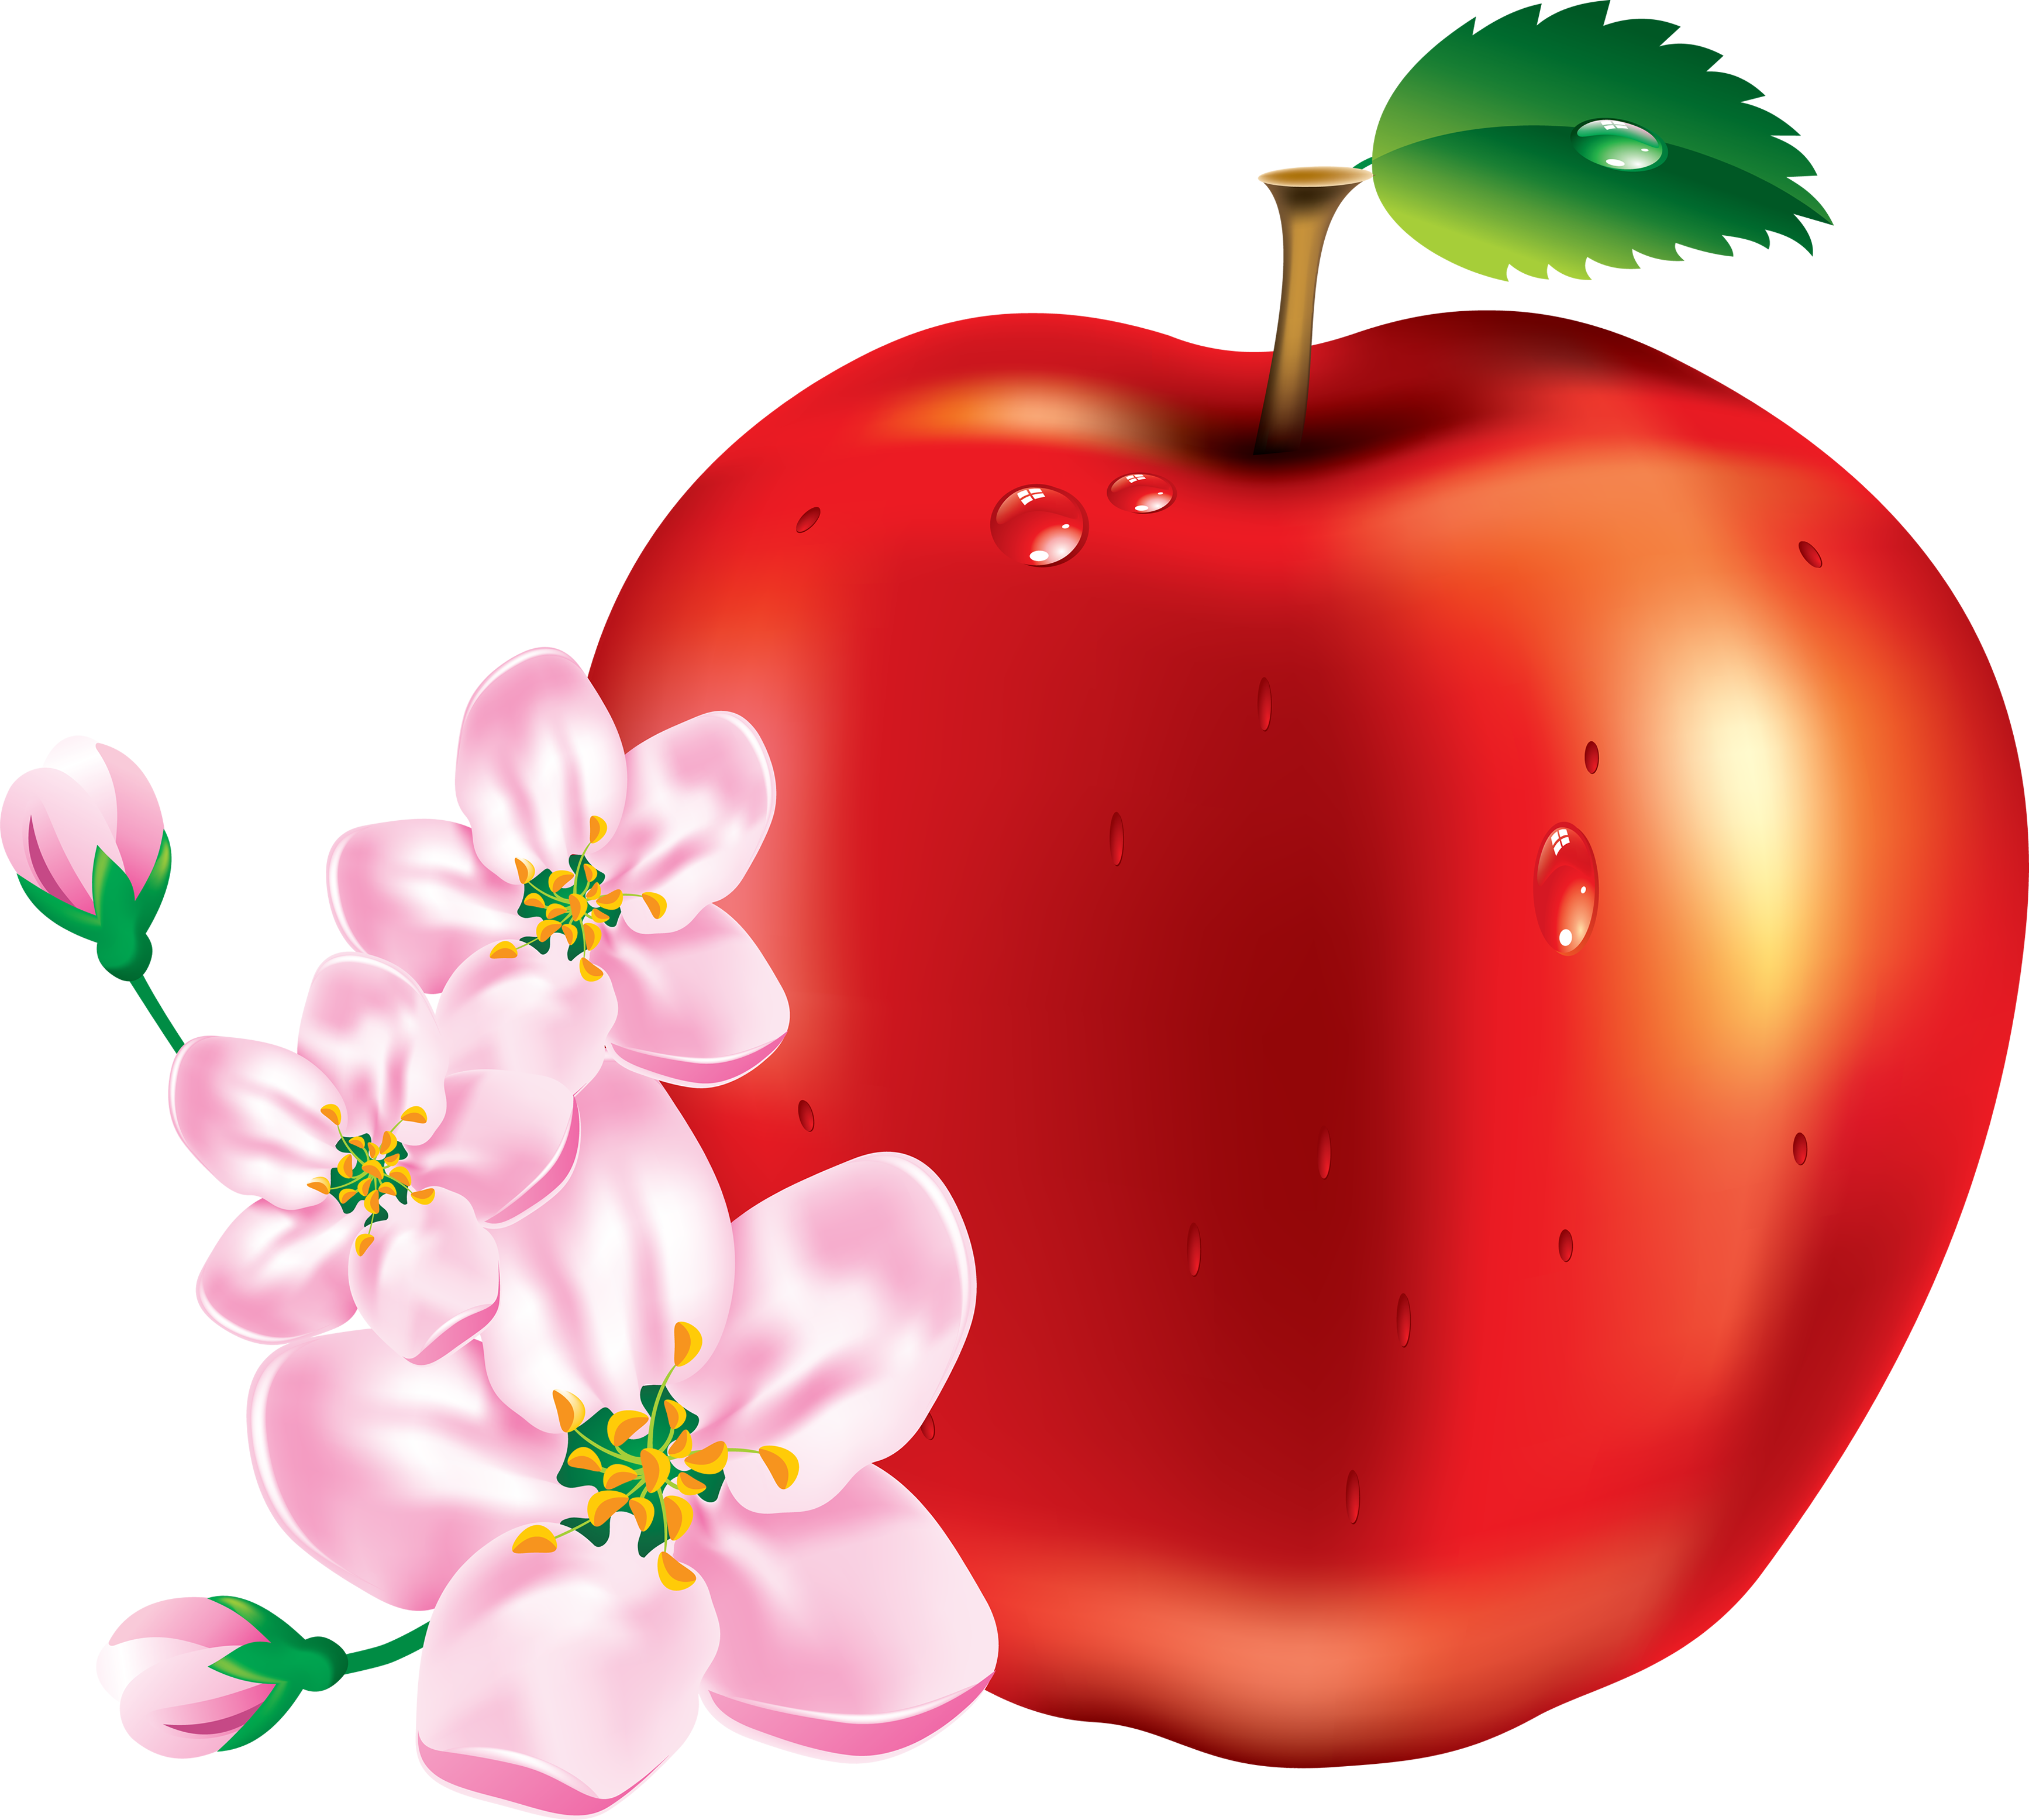 One apple clipart clipart freeuse stock Red Apple Forty-one | Isolated Stock Photo by noBACKS.com clipart freeuse stock